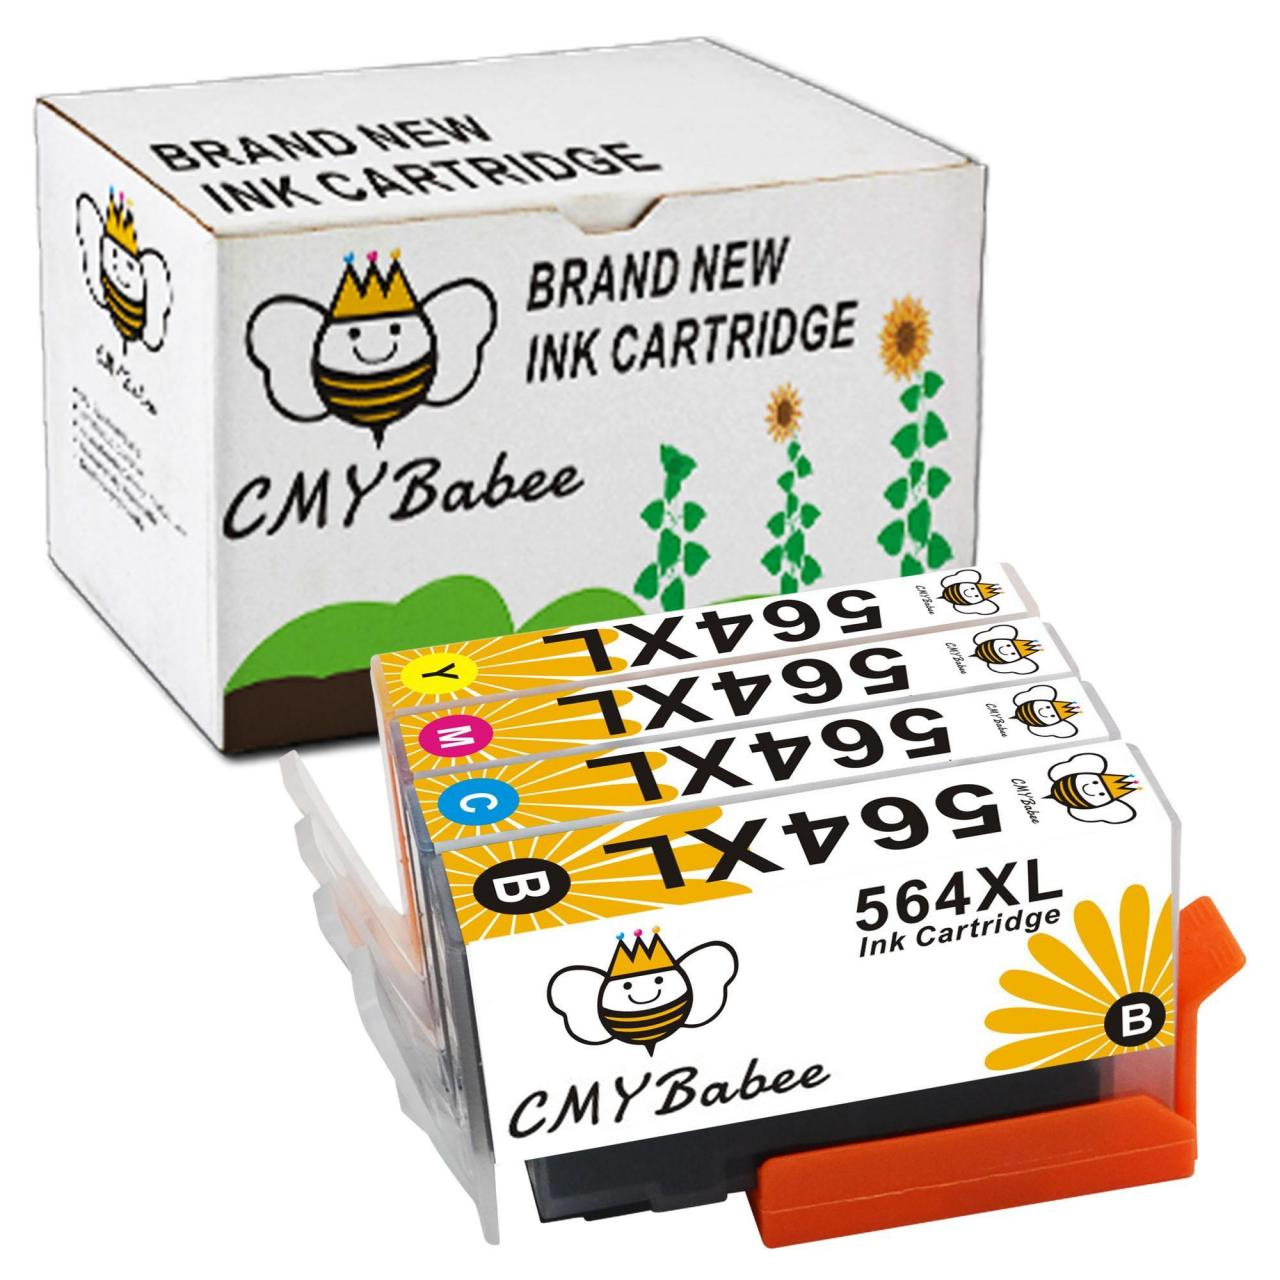 China Ink Cartridges 4 PACK HP 564XL Ink Cartridge for HP PhotoSmart 4610 5510 5520 6510 6520 on sale